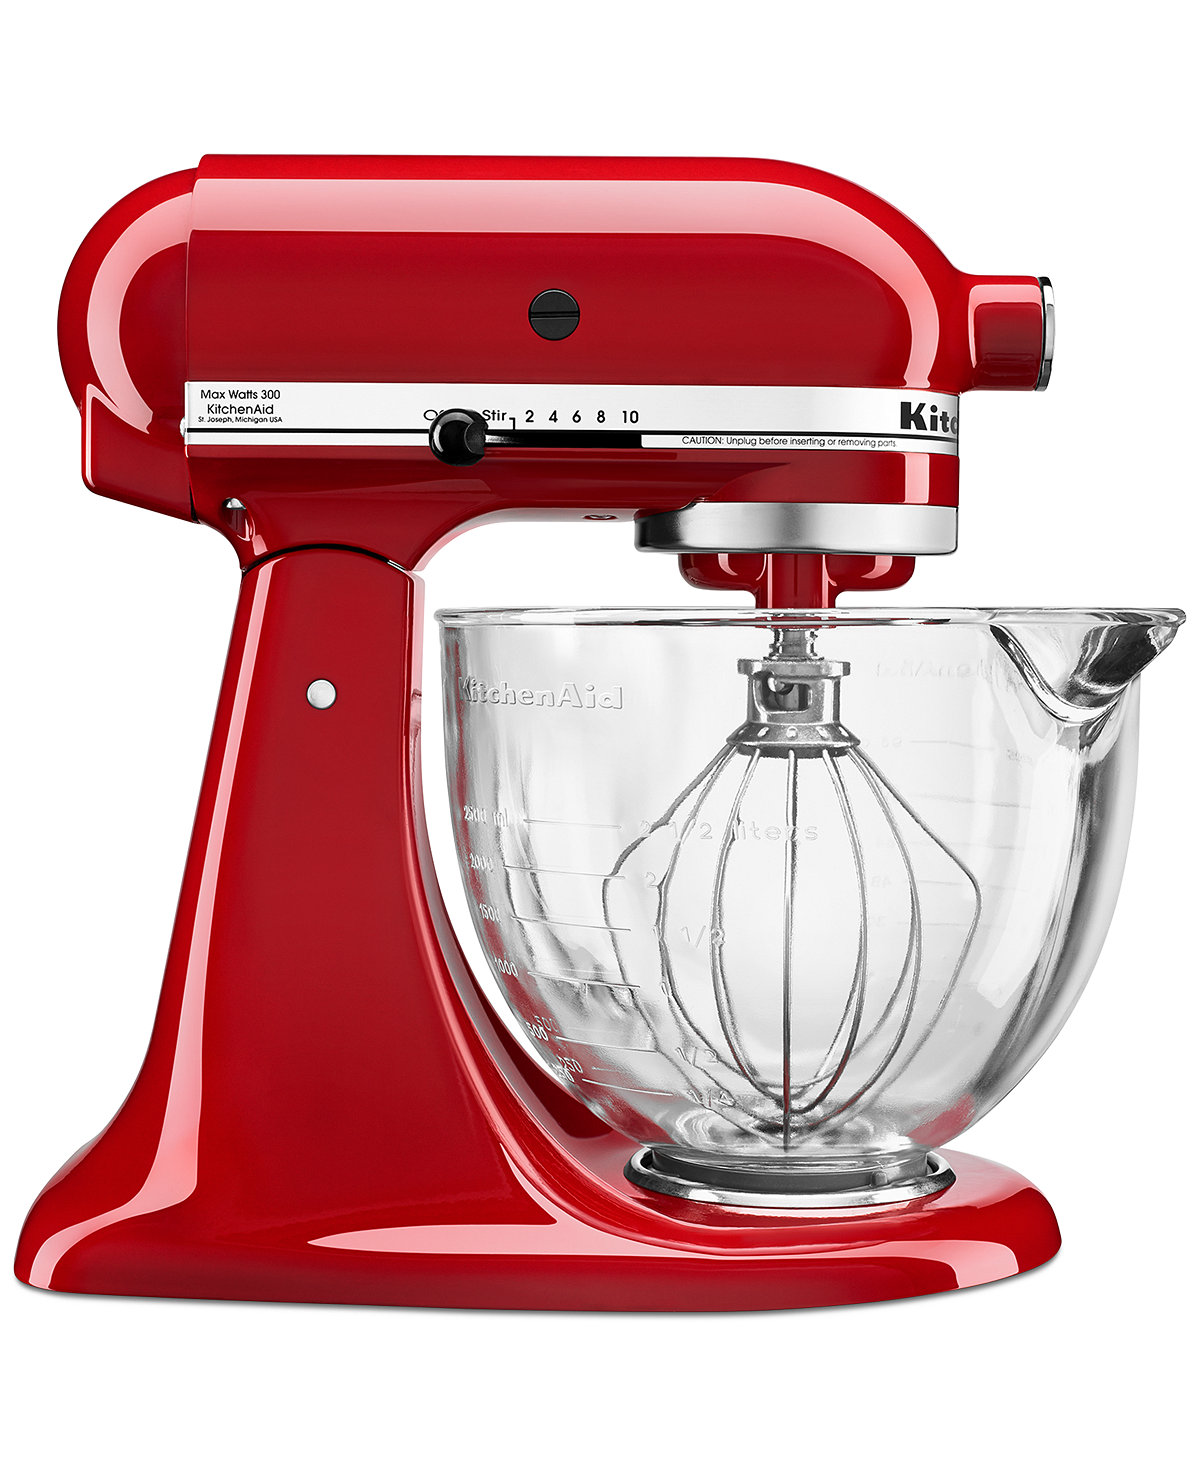 MACYS BLACK FRIDAY SPECIAL! KITCHEN AID MIXERS 50% OFF!